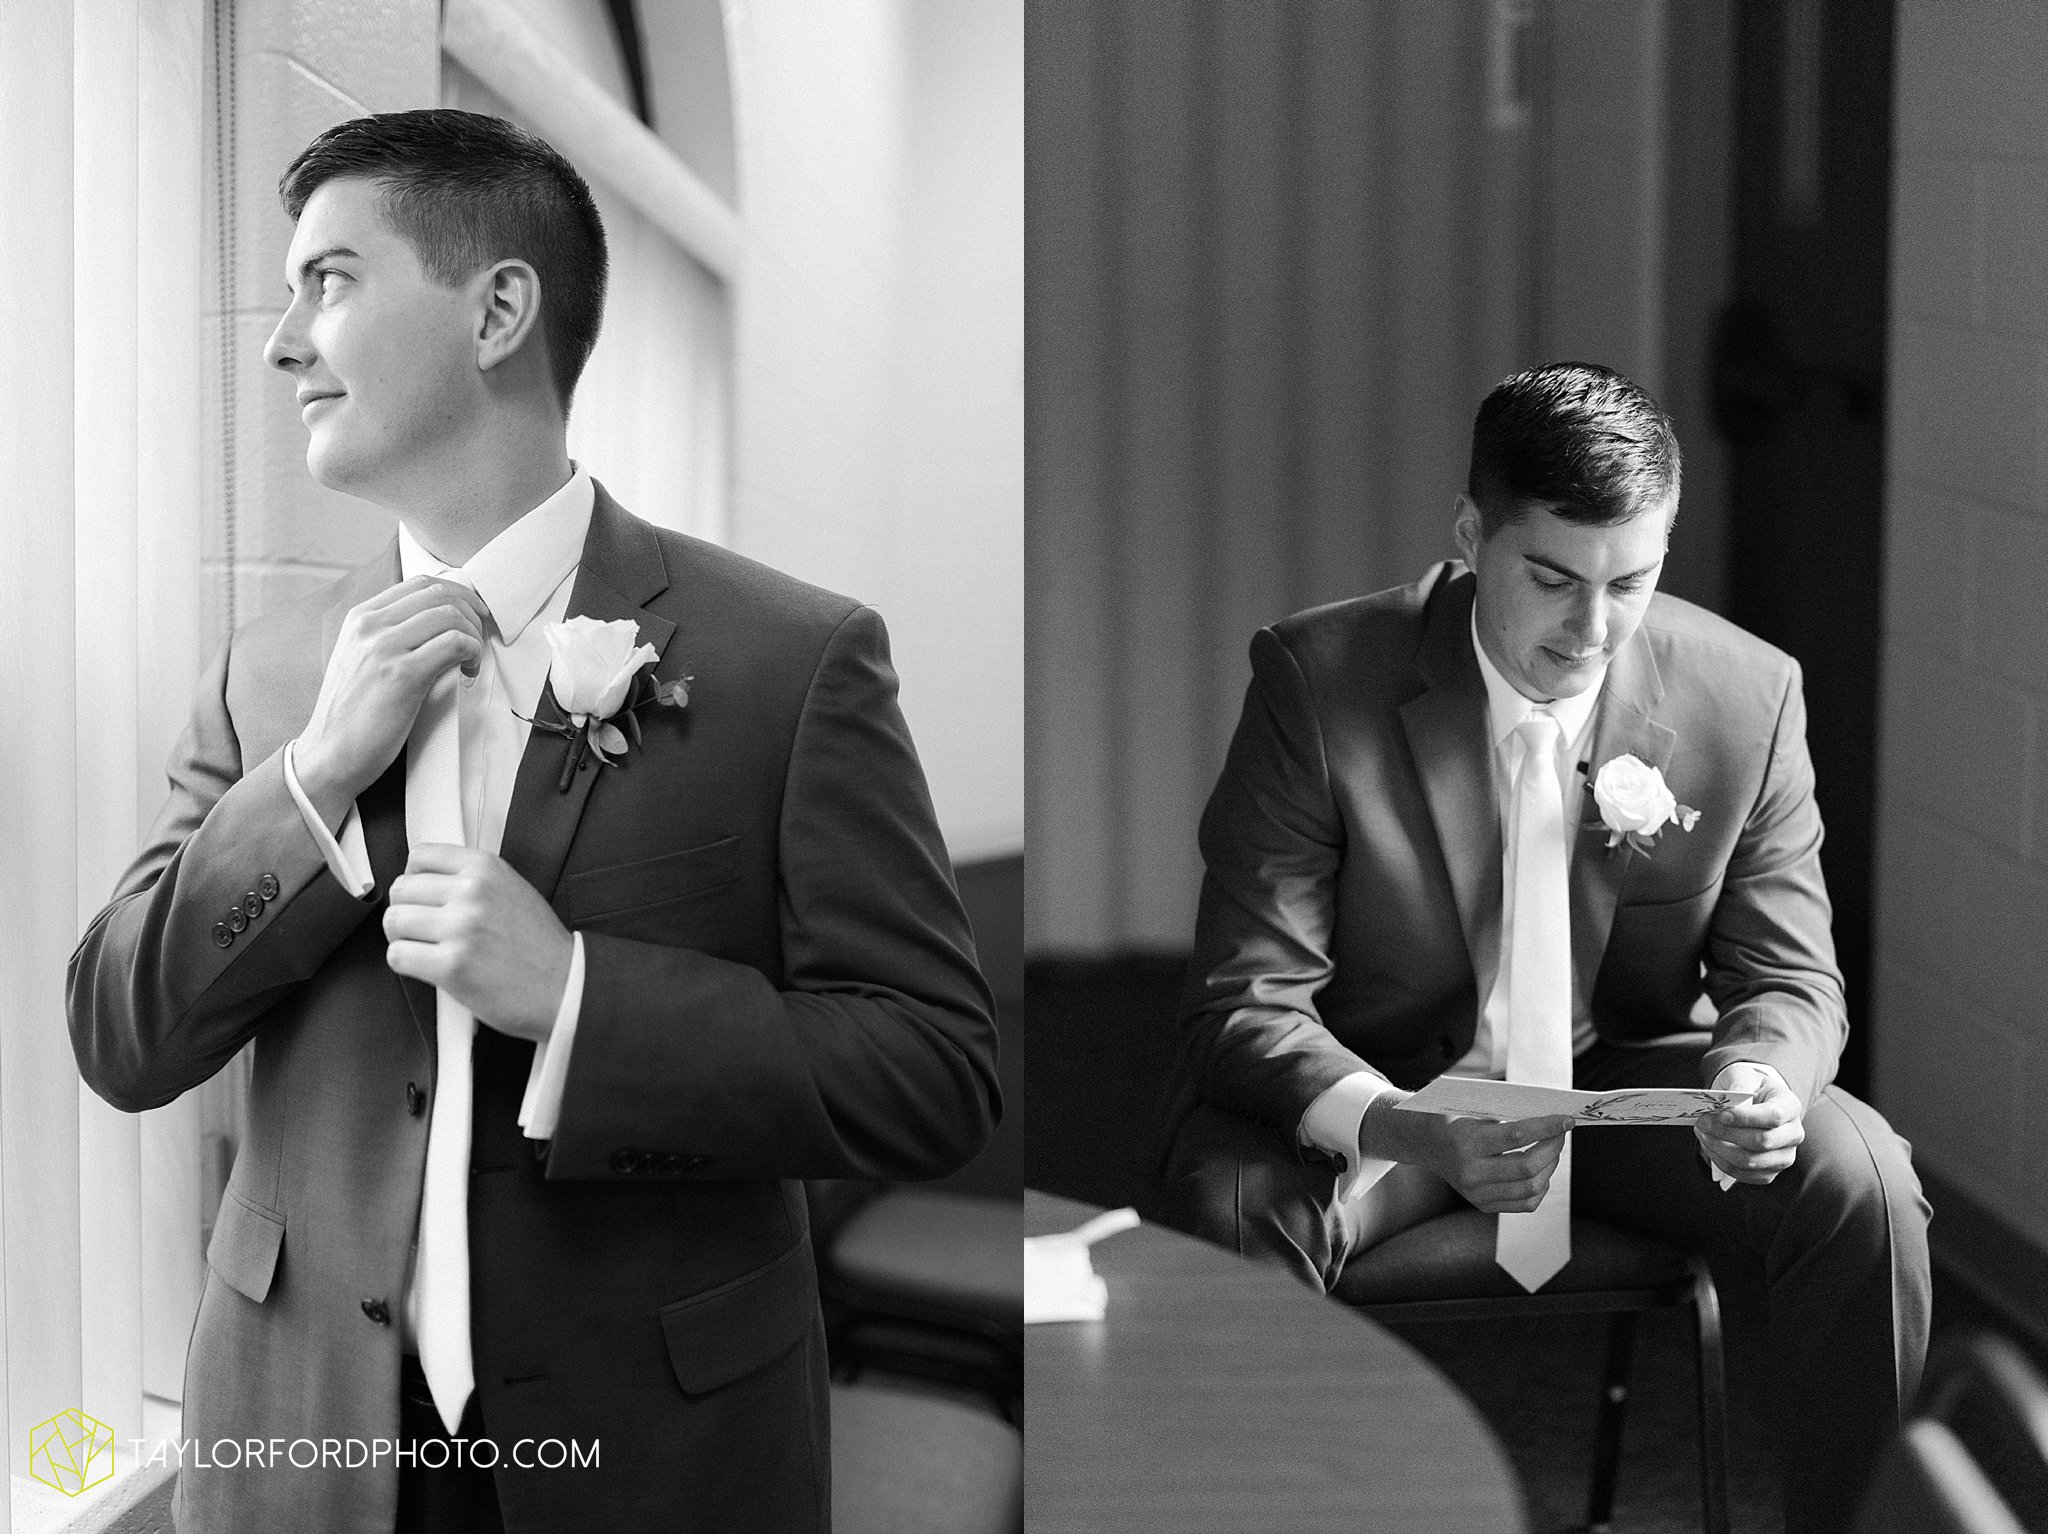 kacee-haden-sholl-second-story-saint-marys-knights-of-columbus-defiance-ohio-wedding-photographer-taylor-ford-photography_0141.jpg